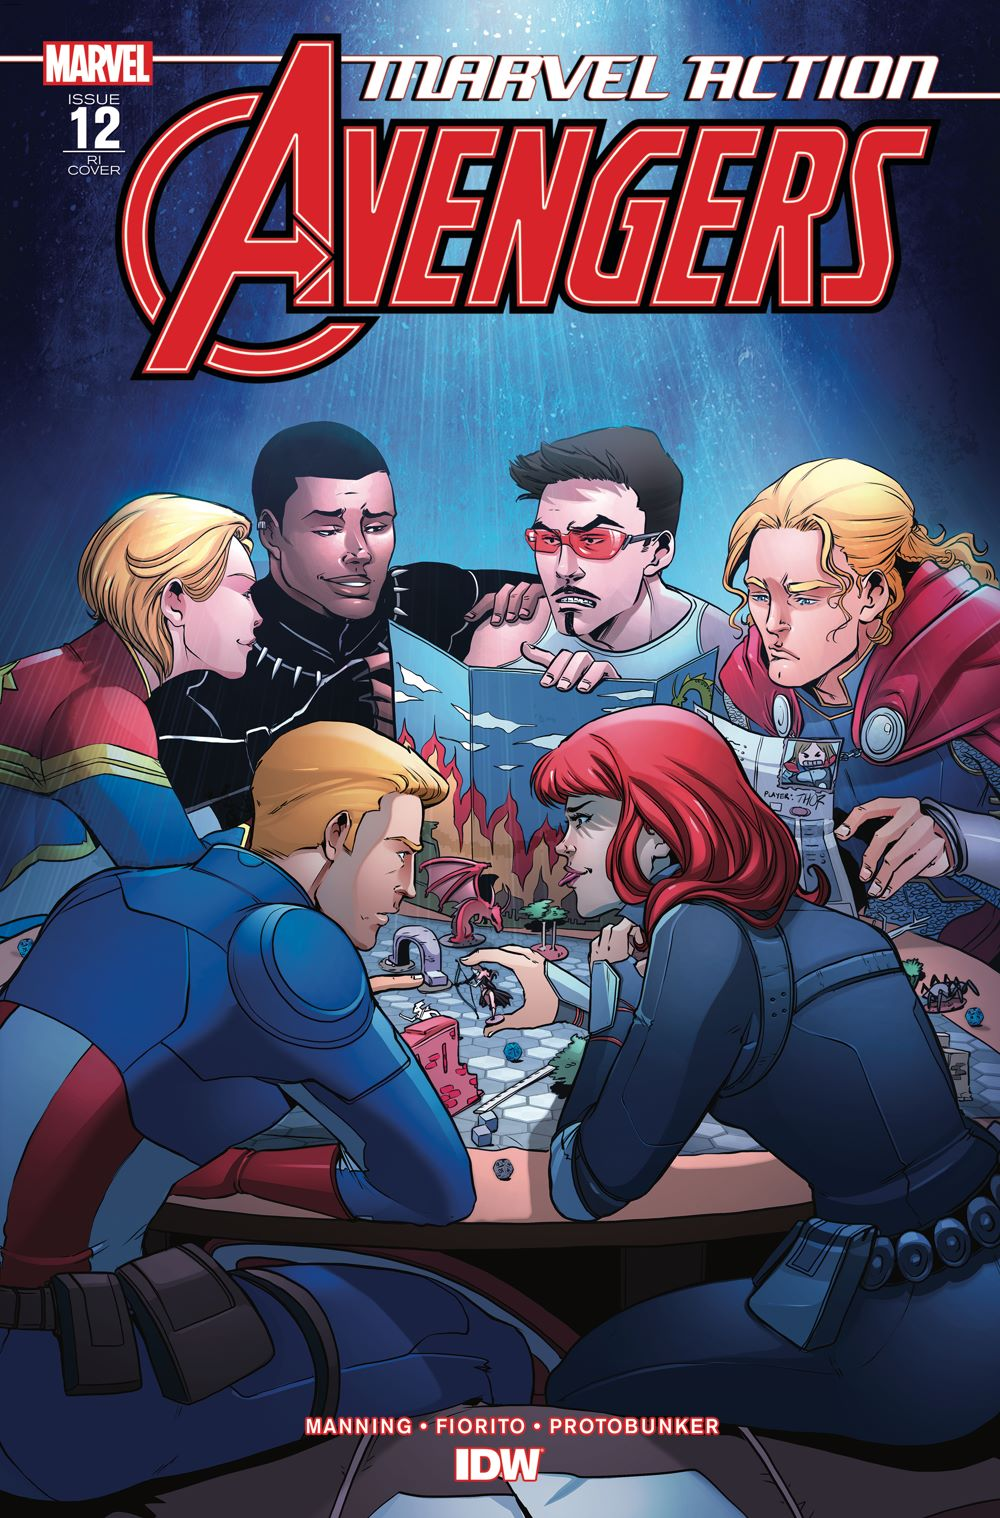 Marvel_Avengers12_coverRI ComicList Previews: MARVEL ACTION AVENGERS #12